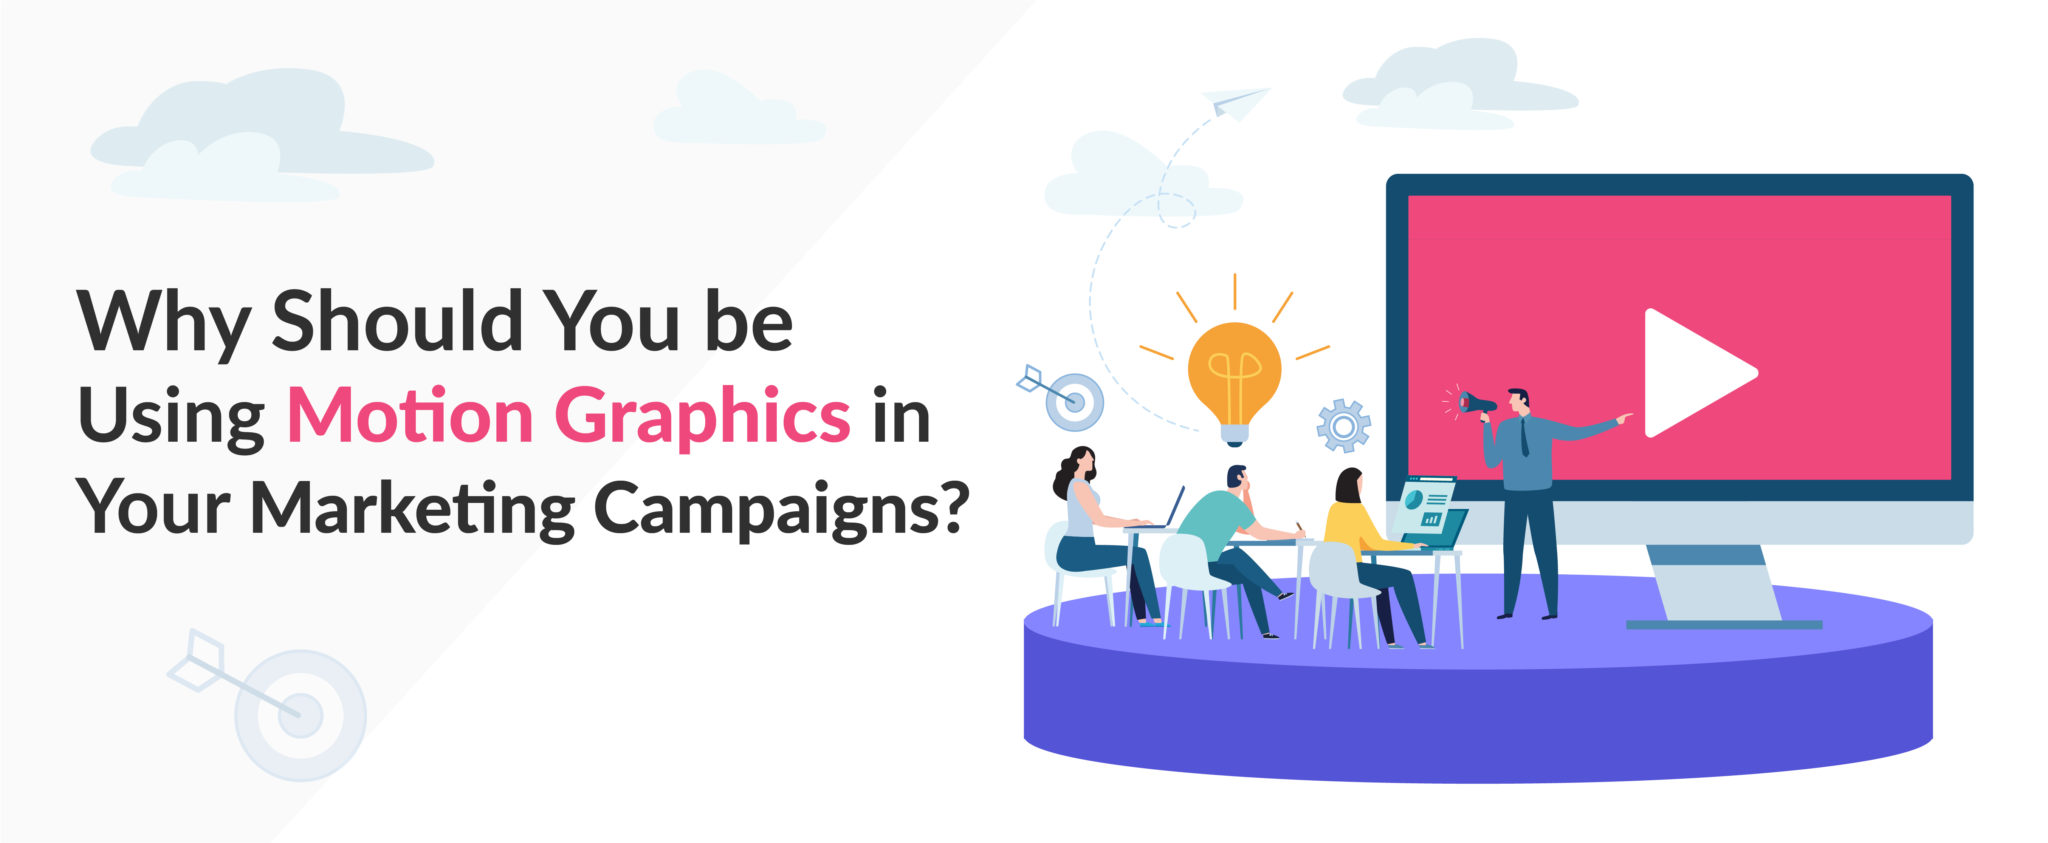 Using Motion Graphics in Your Marketing Campaigns